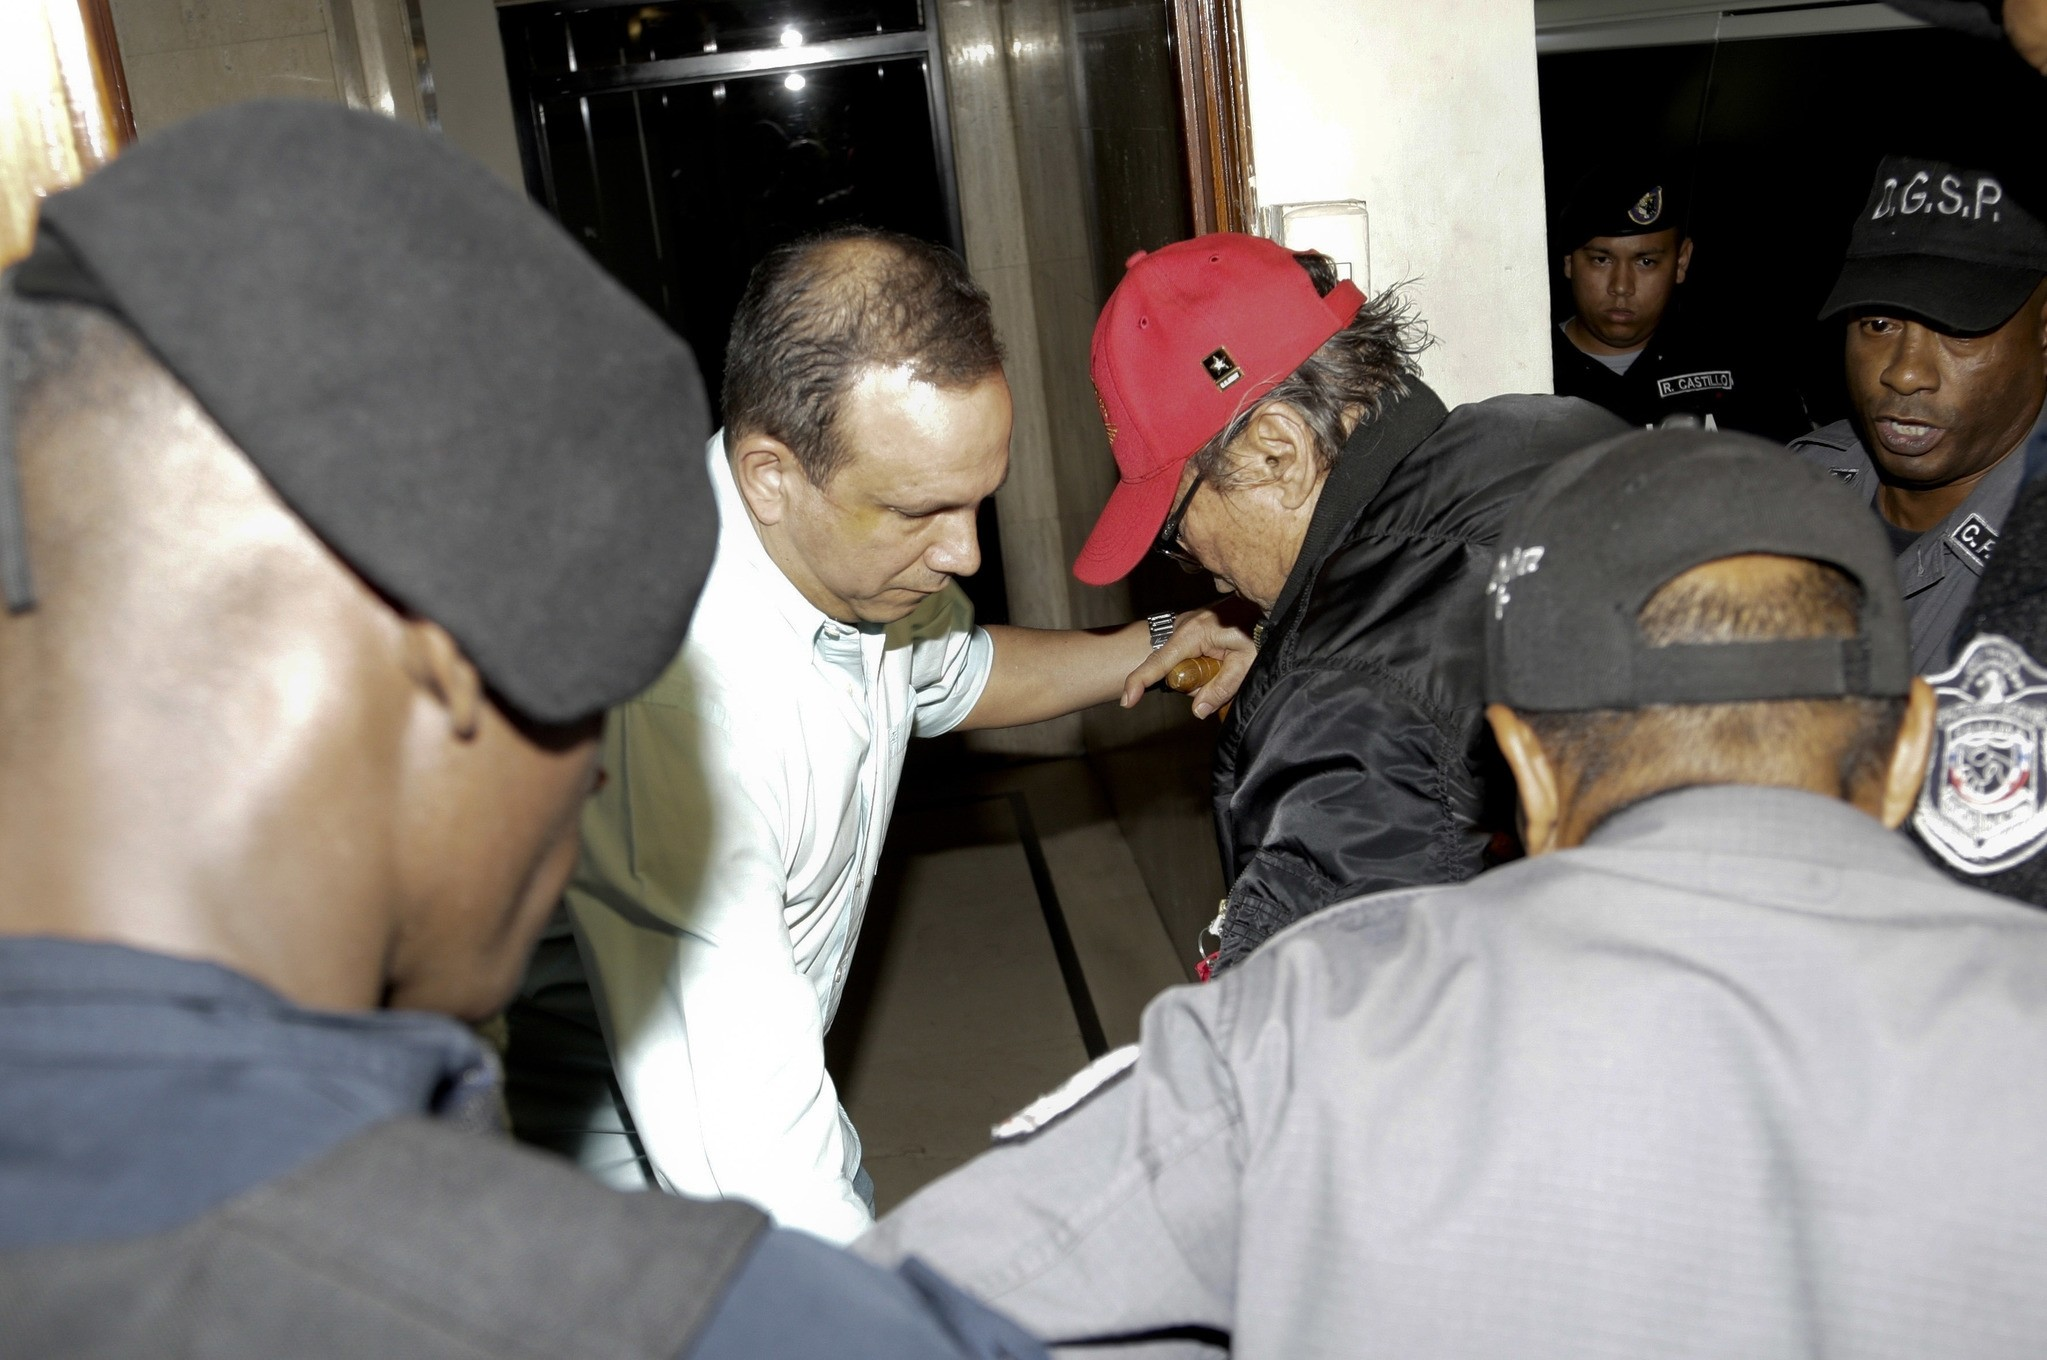 Panamanian ex-dictator Manuel Antonio Noriega, wearing a red baseball cap, arrives after being placed under house arrest for three months in Panama City. (AP Photo)